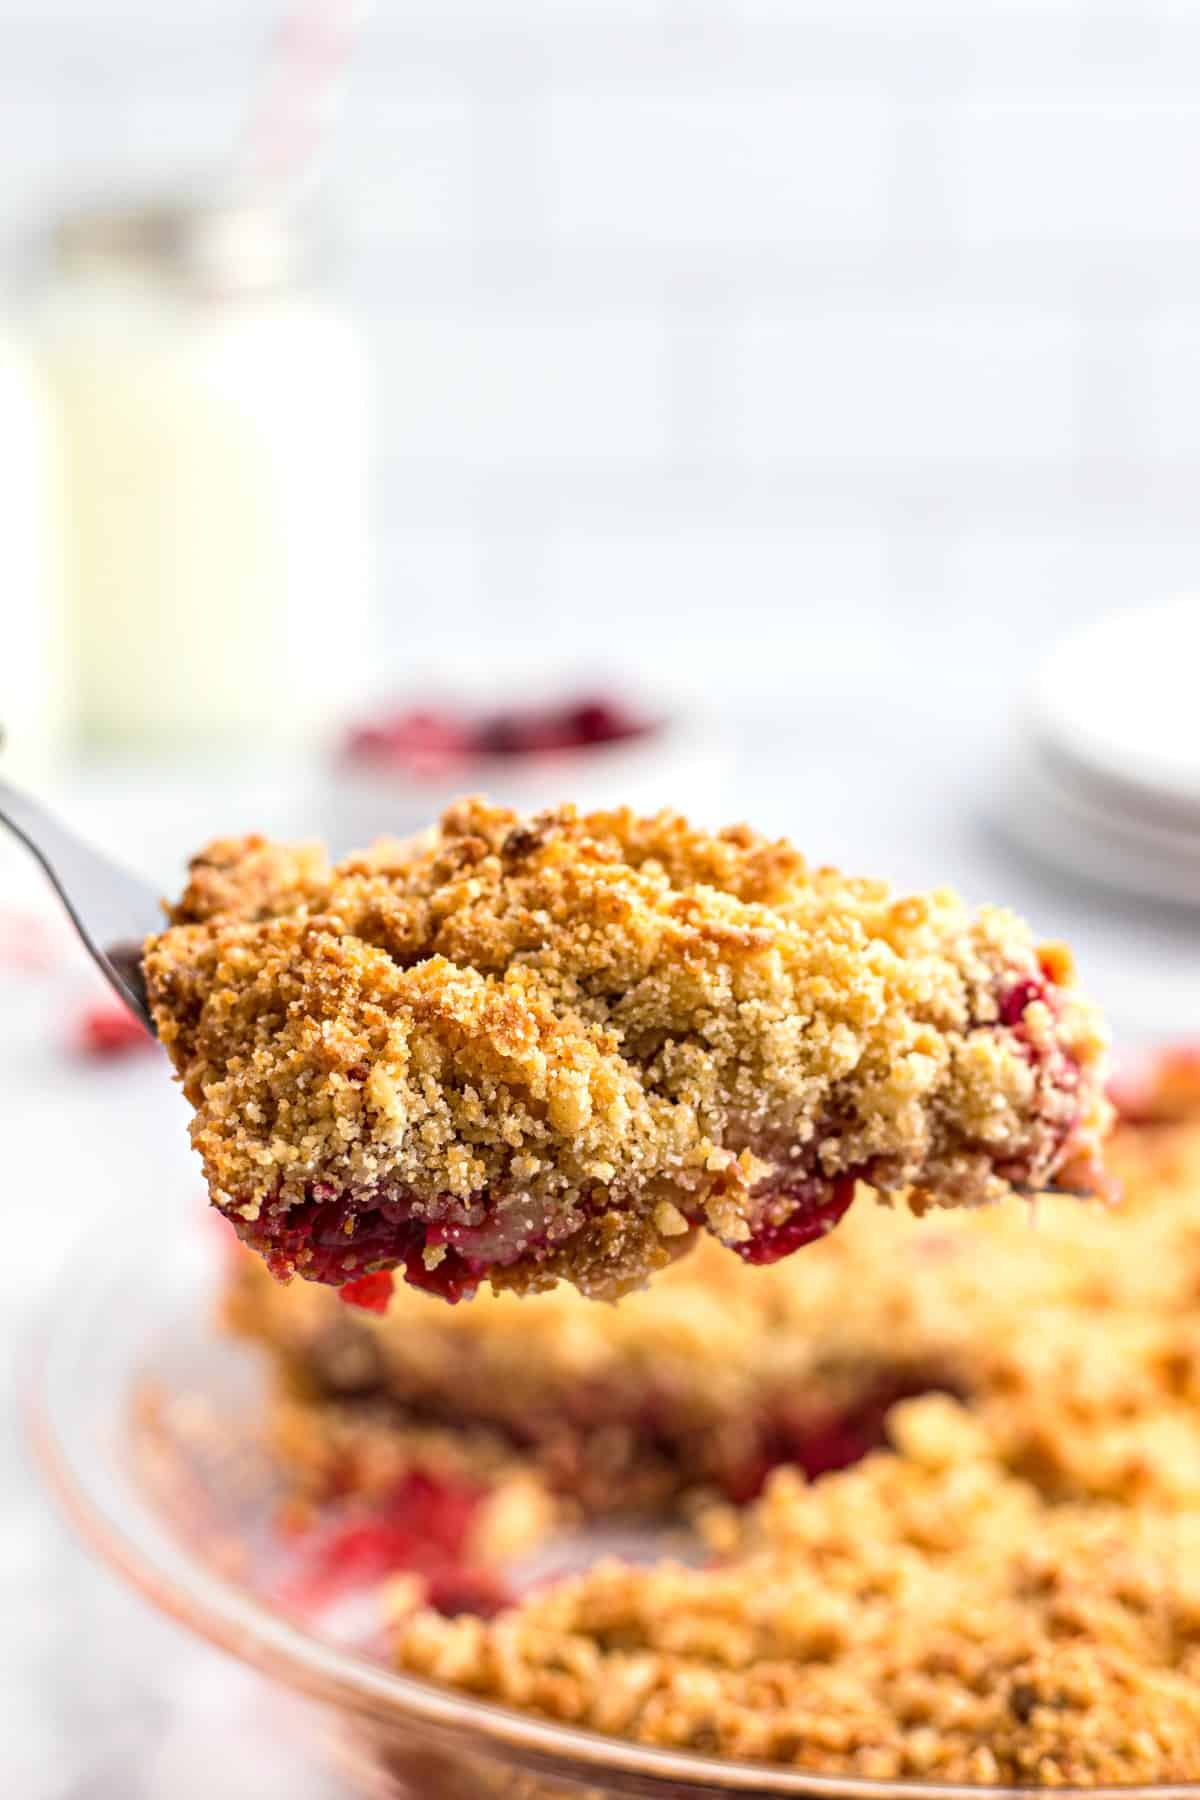 Slice of apple cranberry crumble being lifted out of the pie plate.